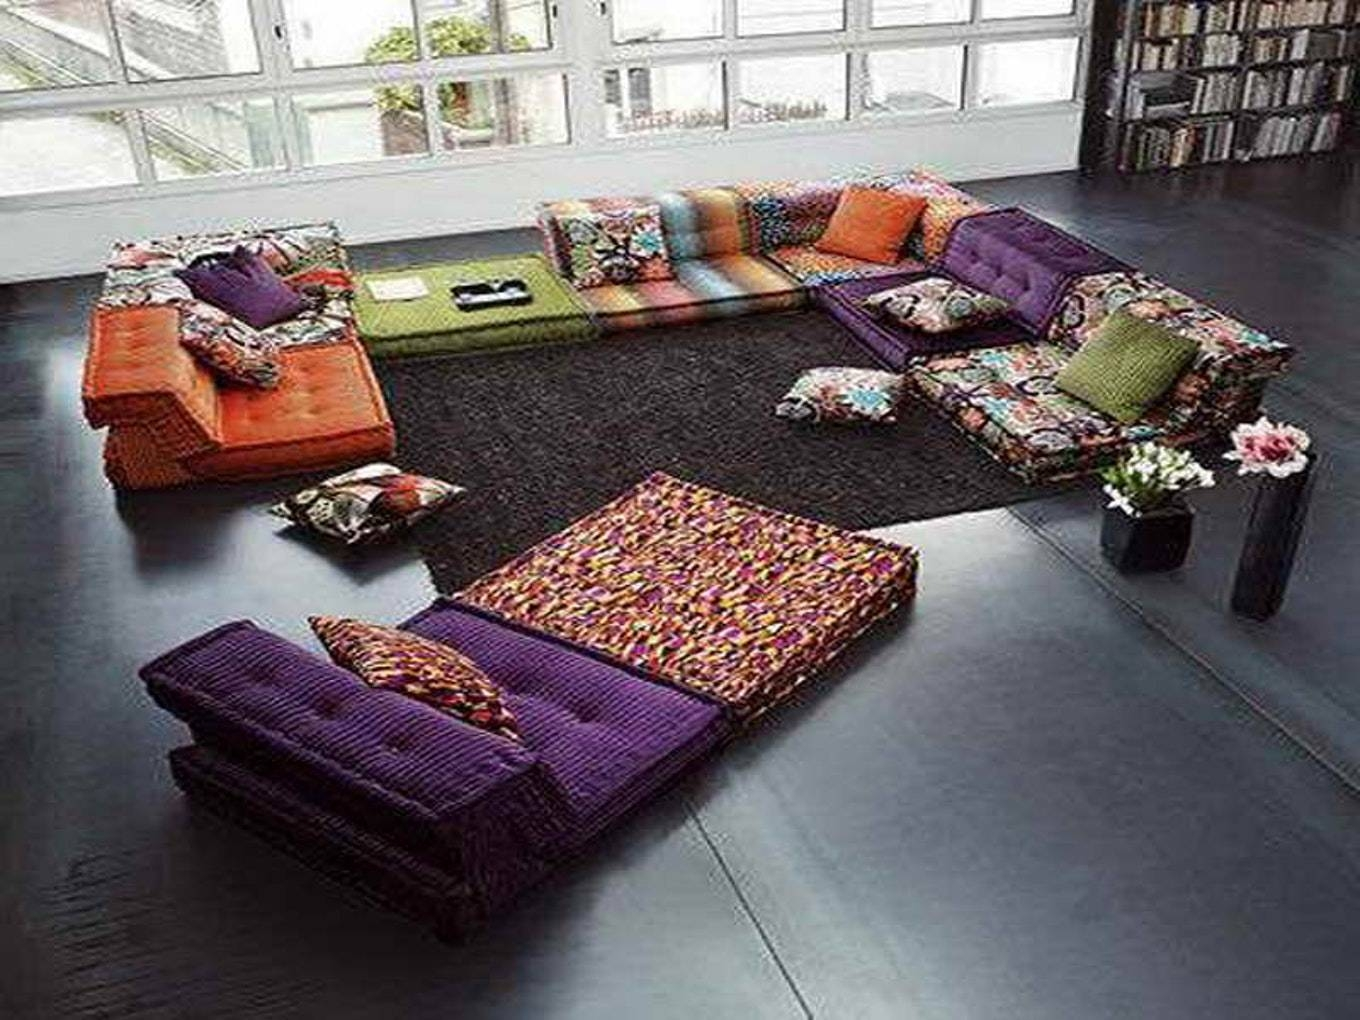 Floor Seating Ideas Living Room - Militariart in Floor Seating Ideas (Image 16 of 30)